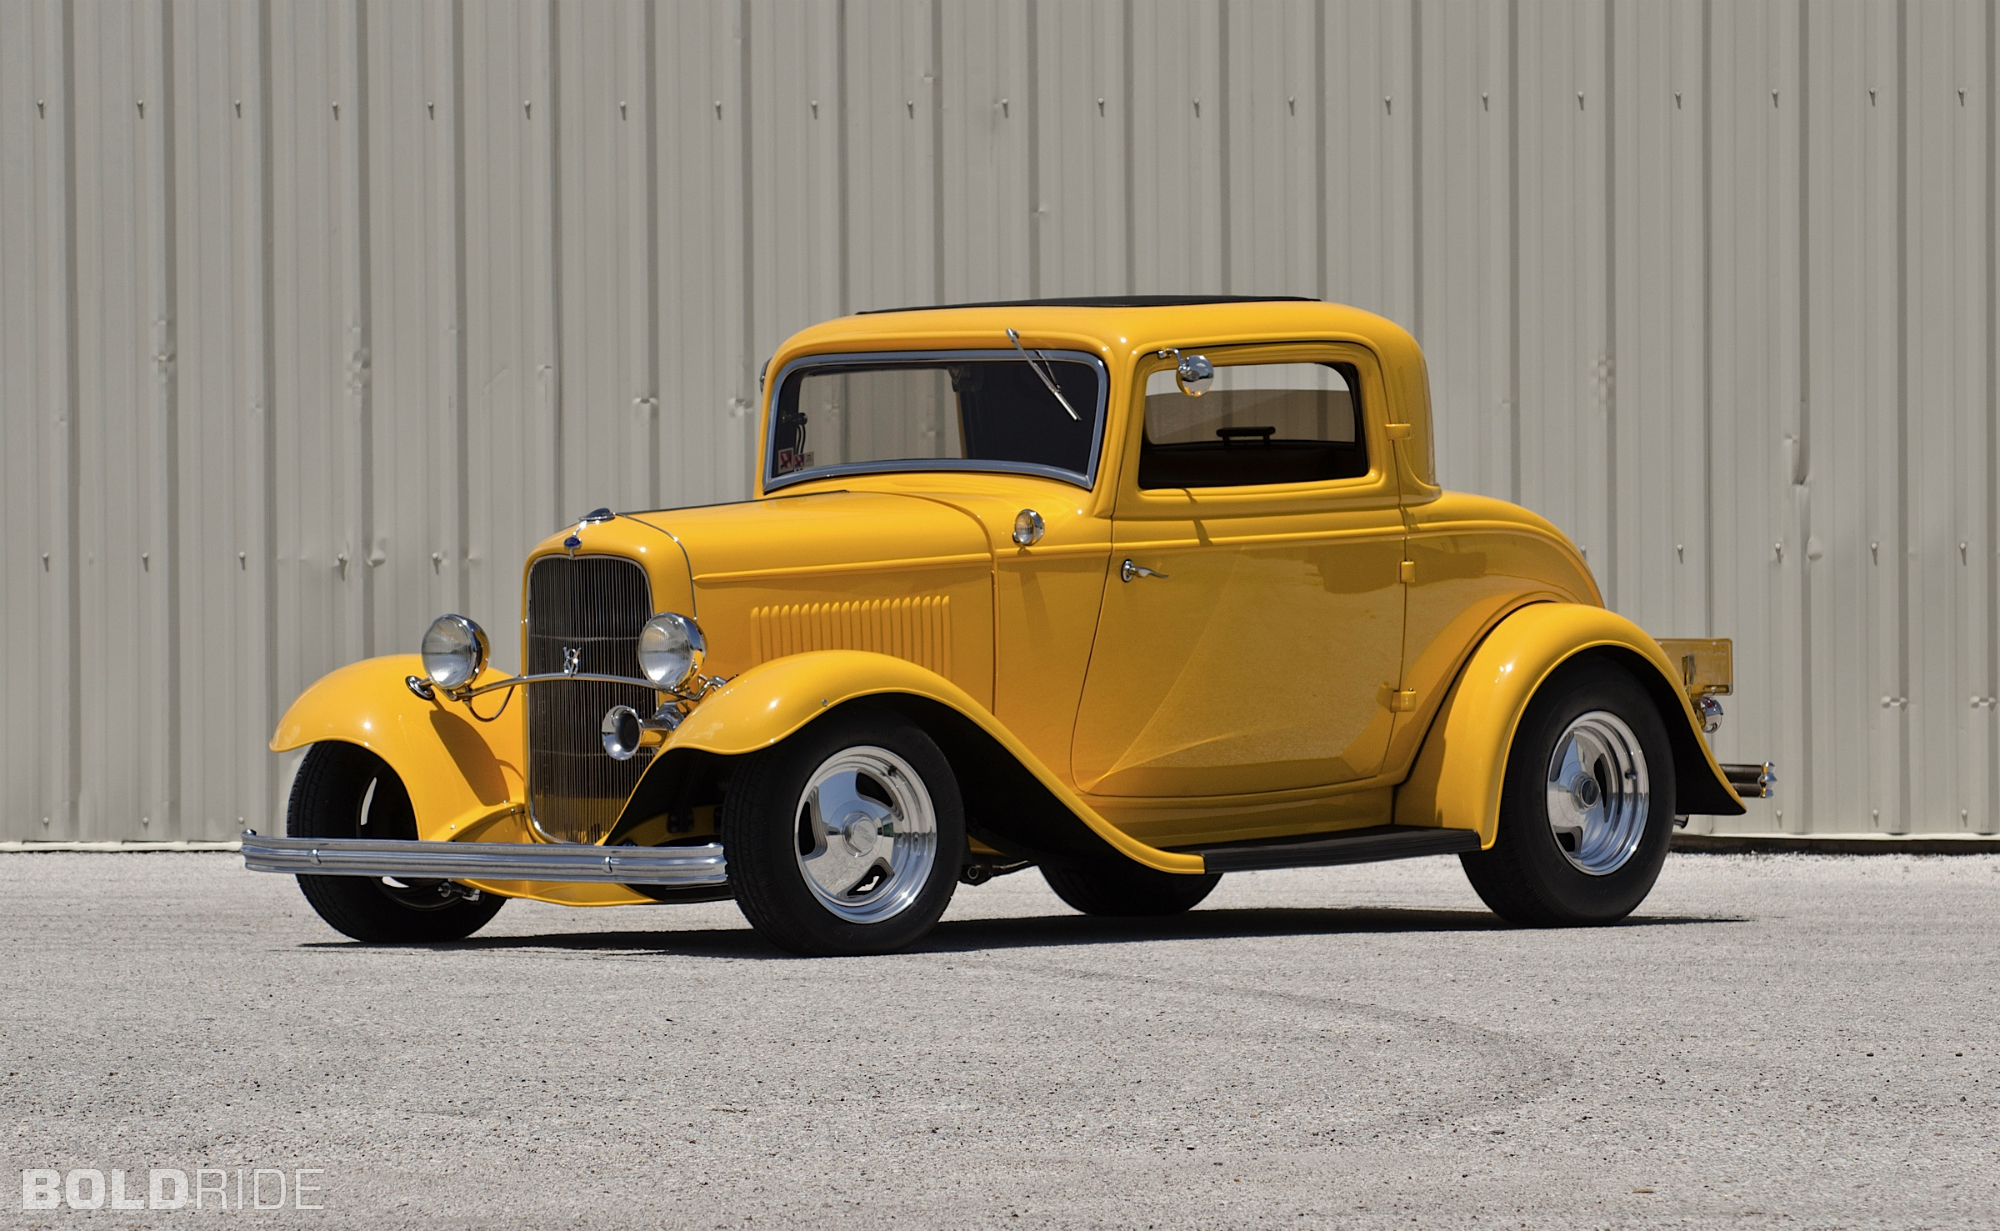 1932 ford three window coupe hot rod rods retro g for 1932 ford 3 window coupe hot rod